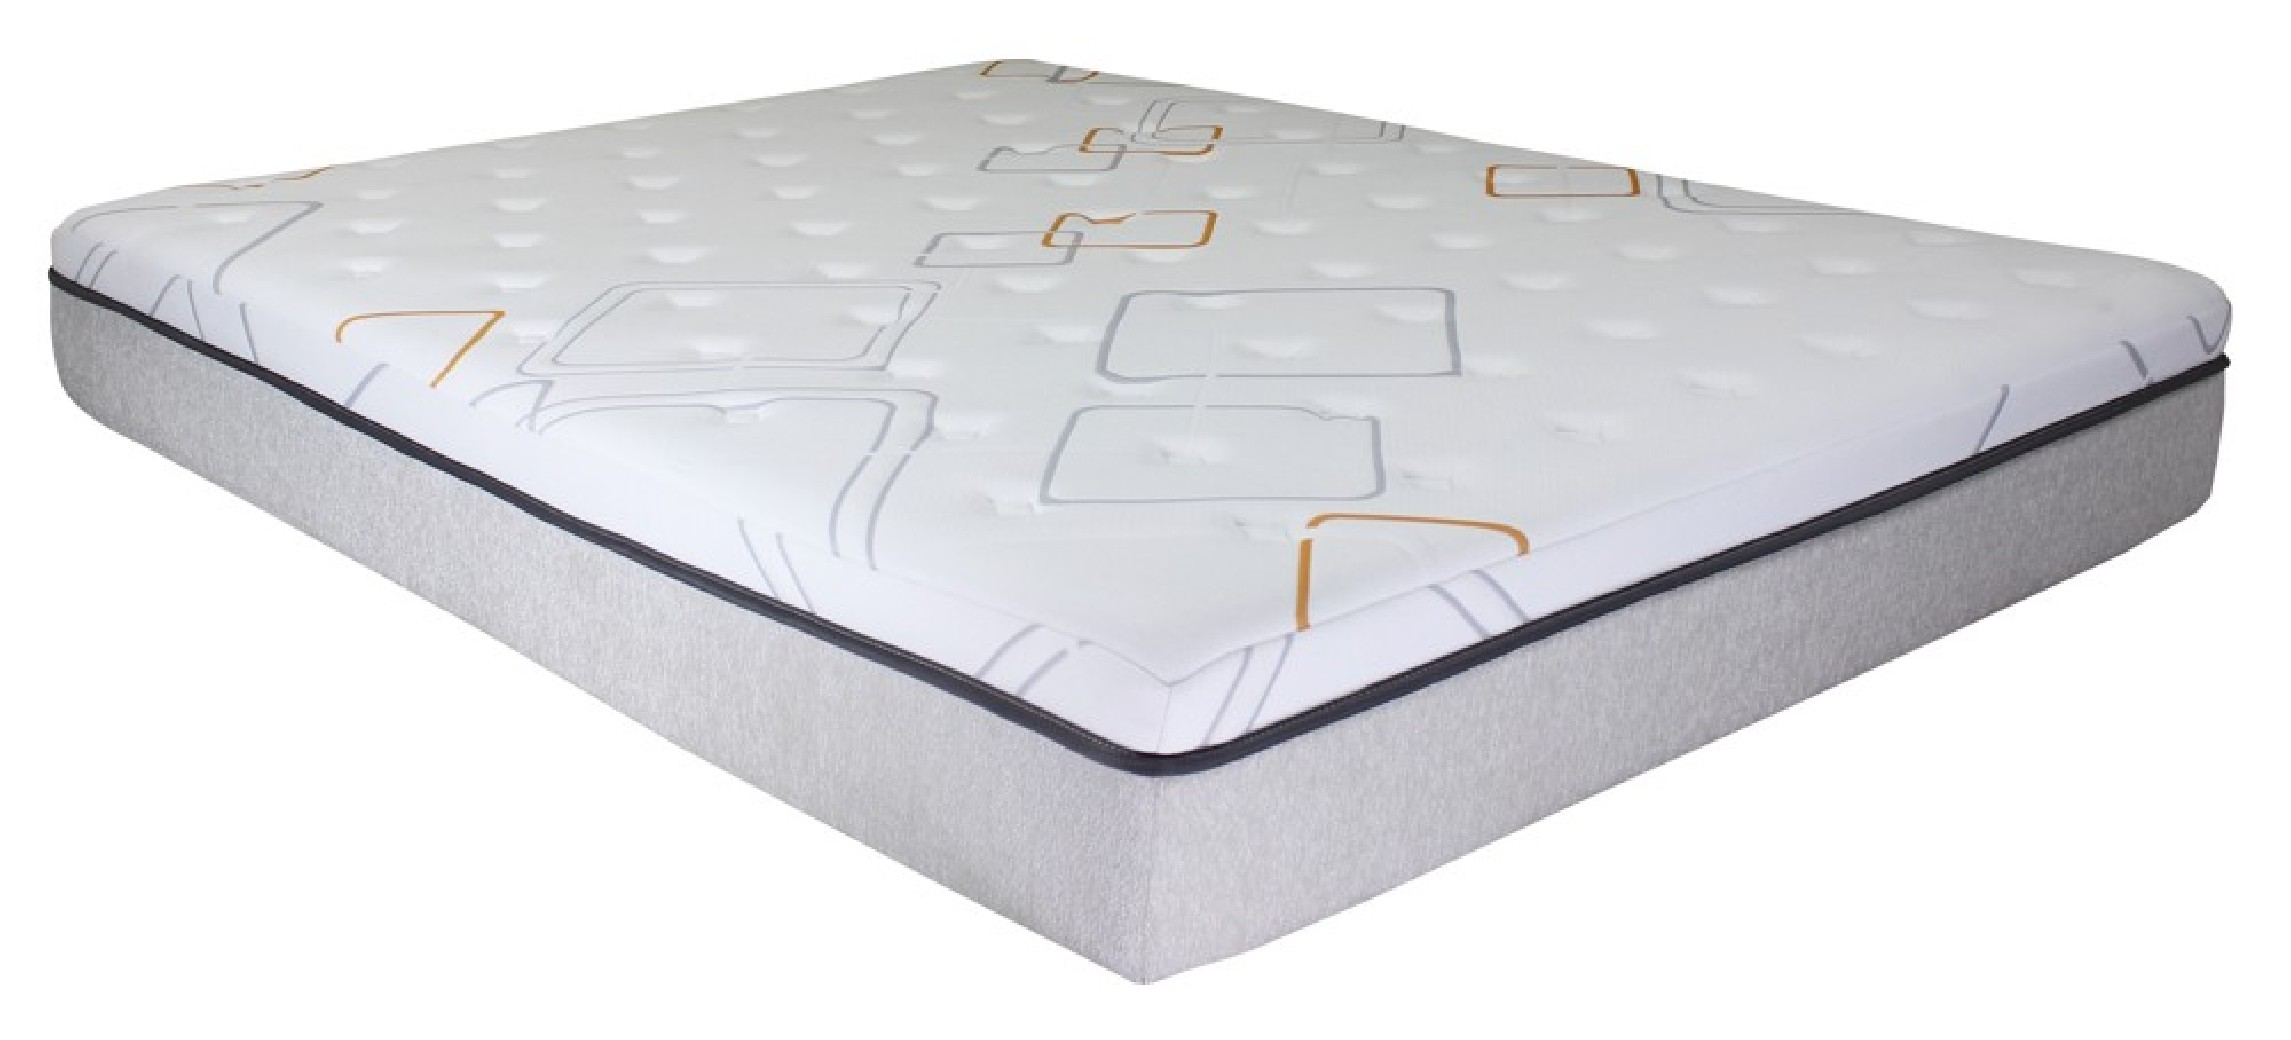 the mattress sleep mattresses foam cool memory bed pillow coil pocket hybrid by bedboss top a spring boss